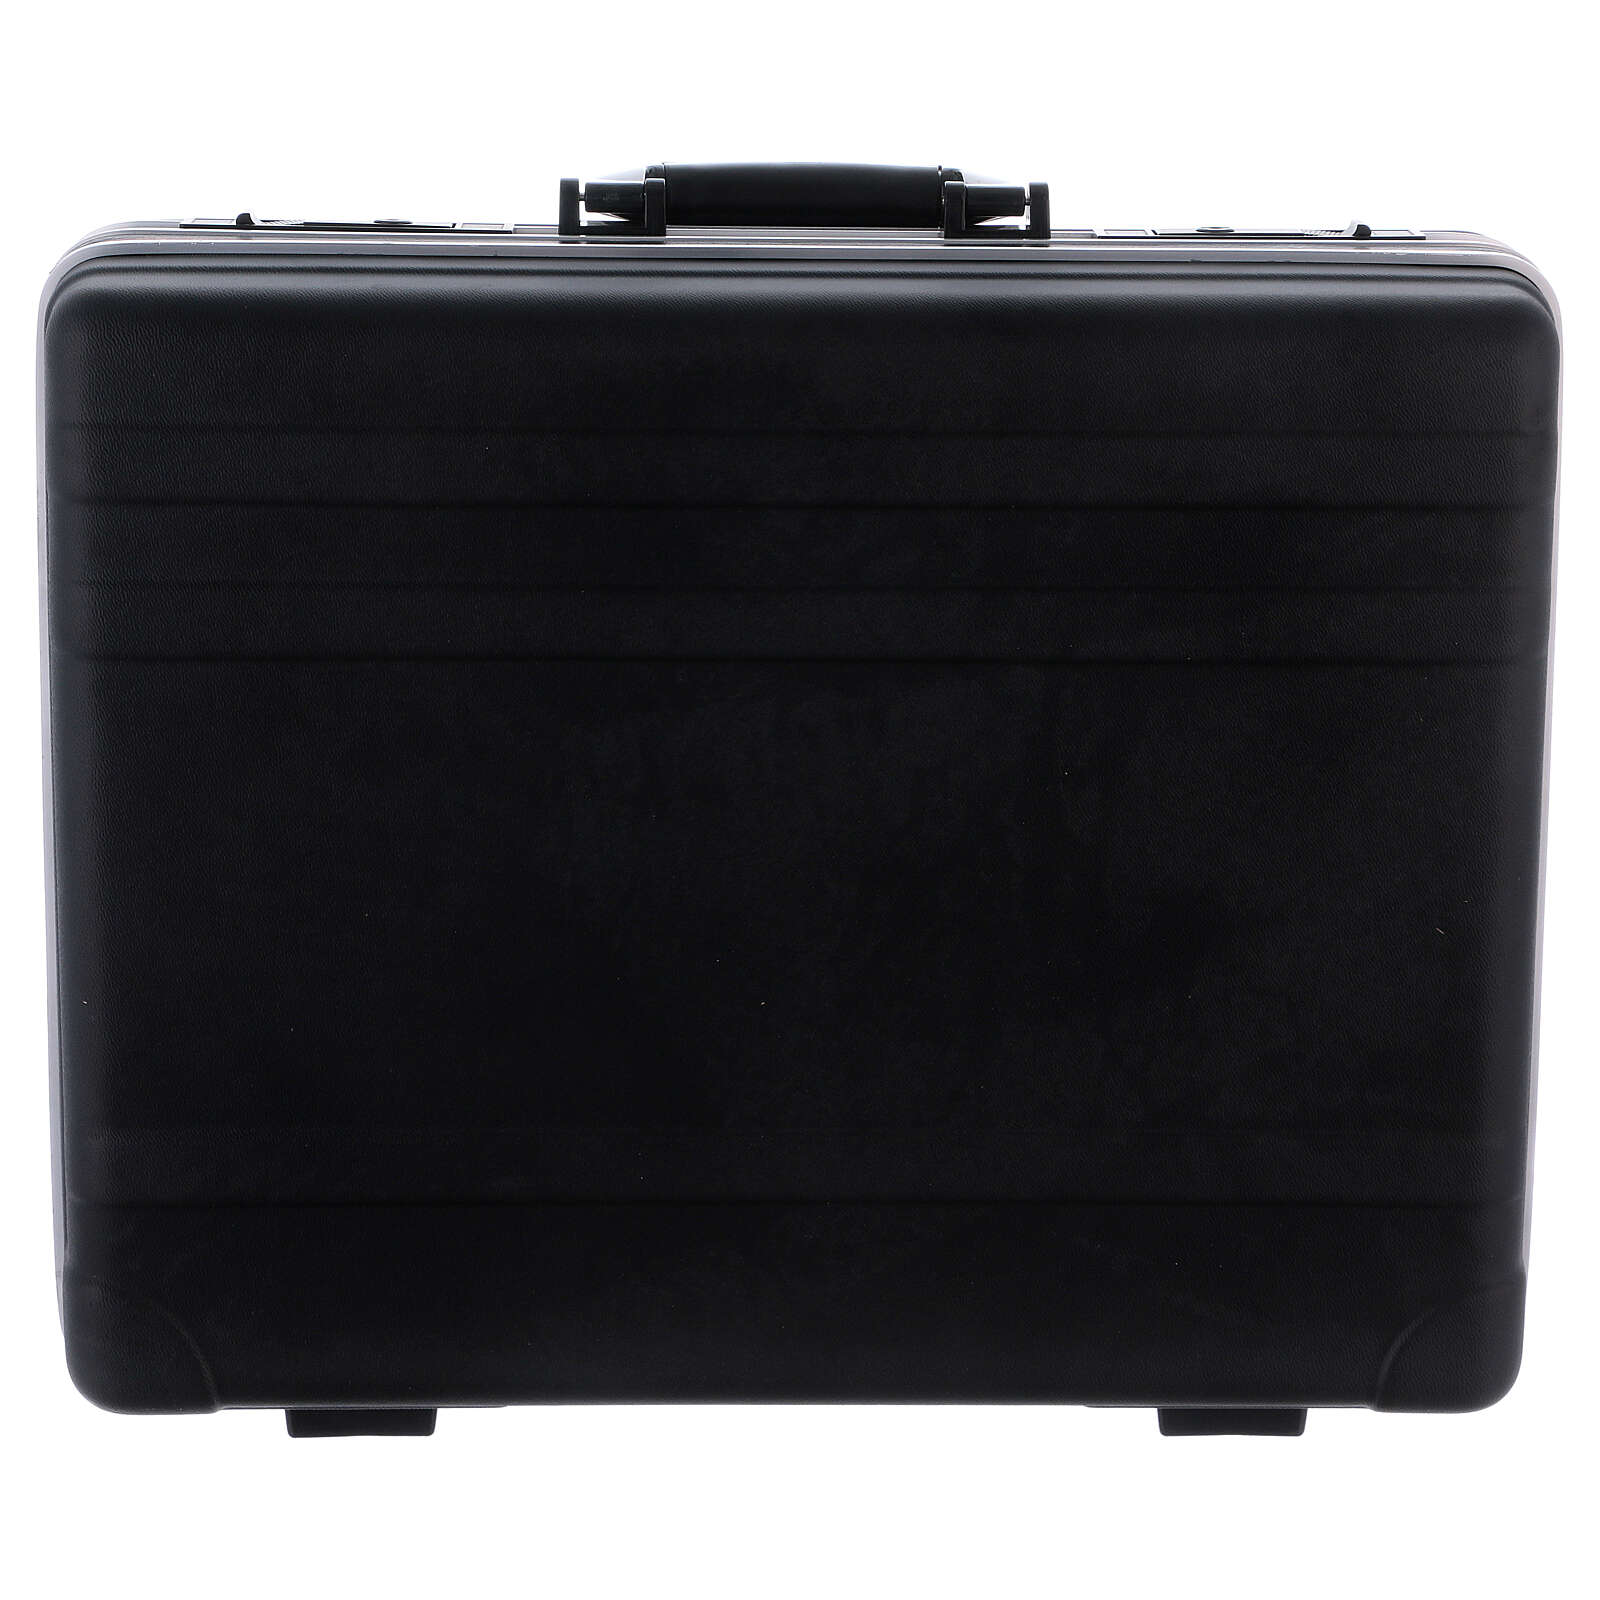 Mass kit with suitcase in plastic and metal, lined with red satin 3